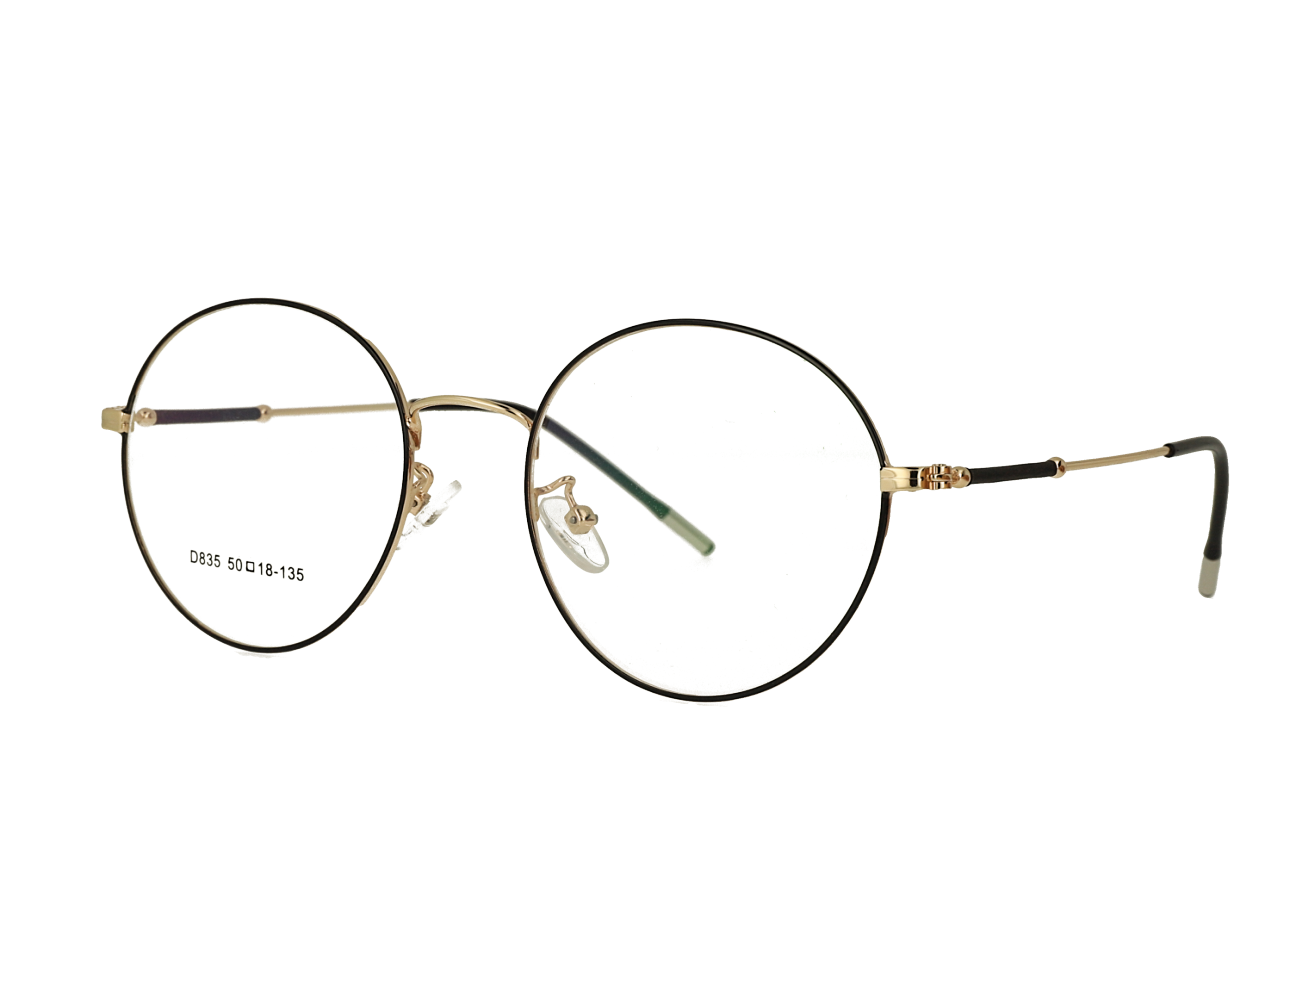 Unisex full rim Retro round metal optical Frame